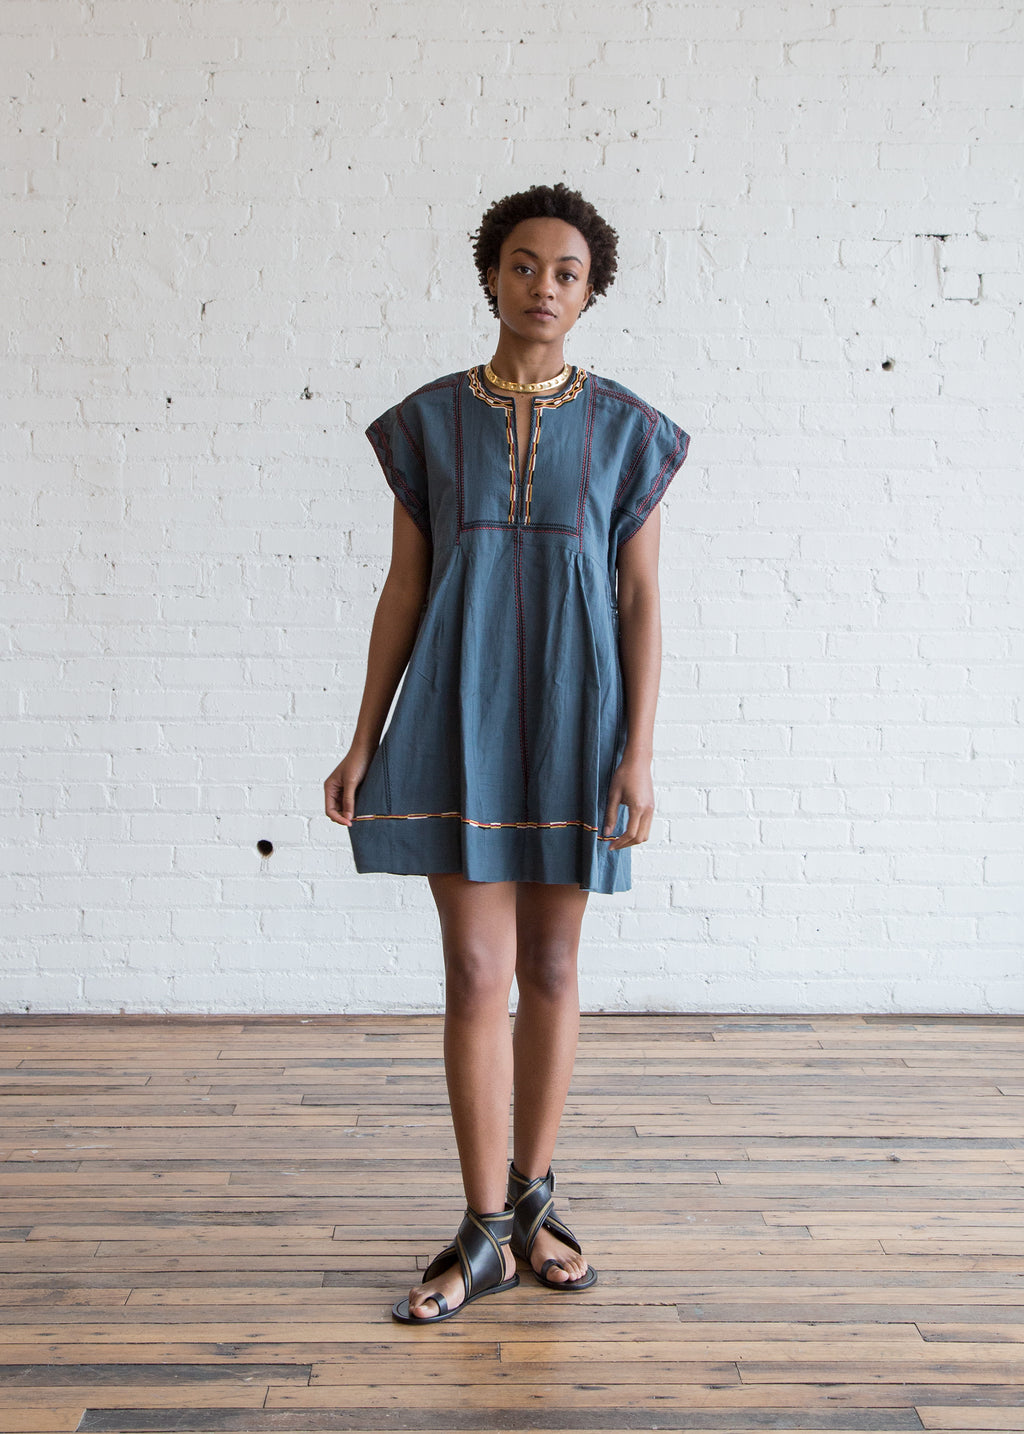 Isabel Marant Etoile Belissa Dress Slate Blue $180